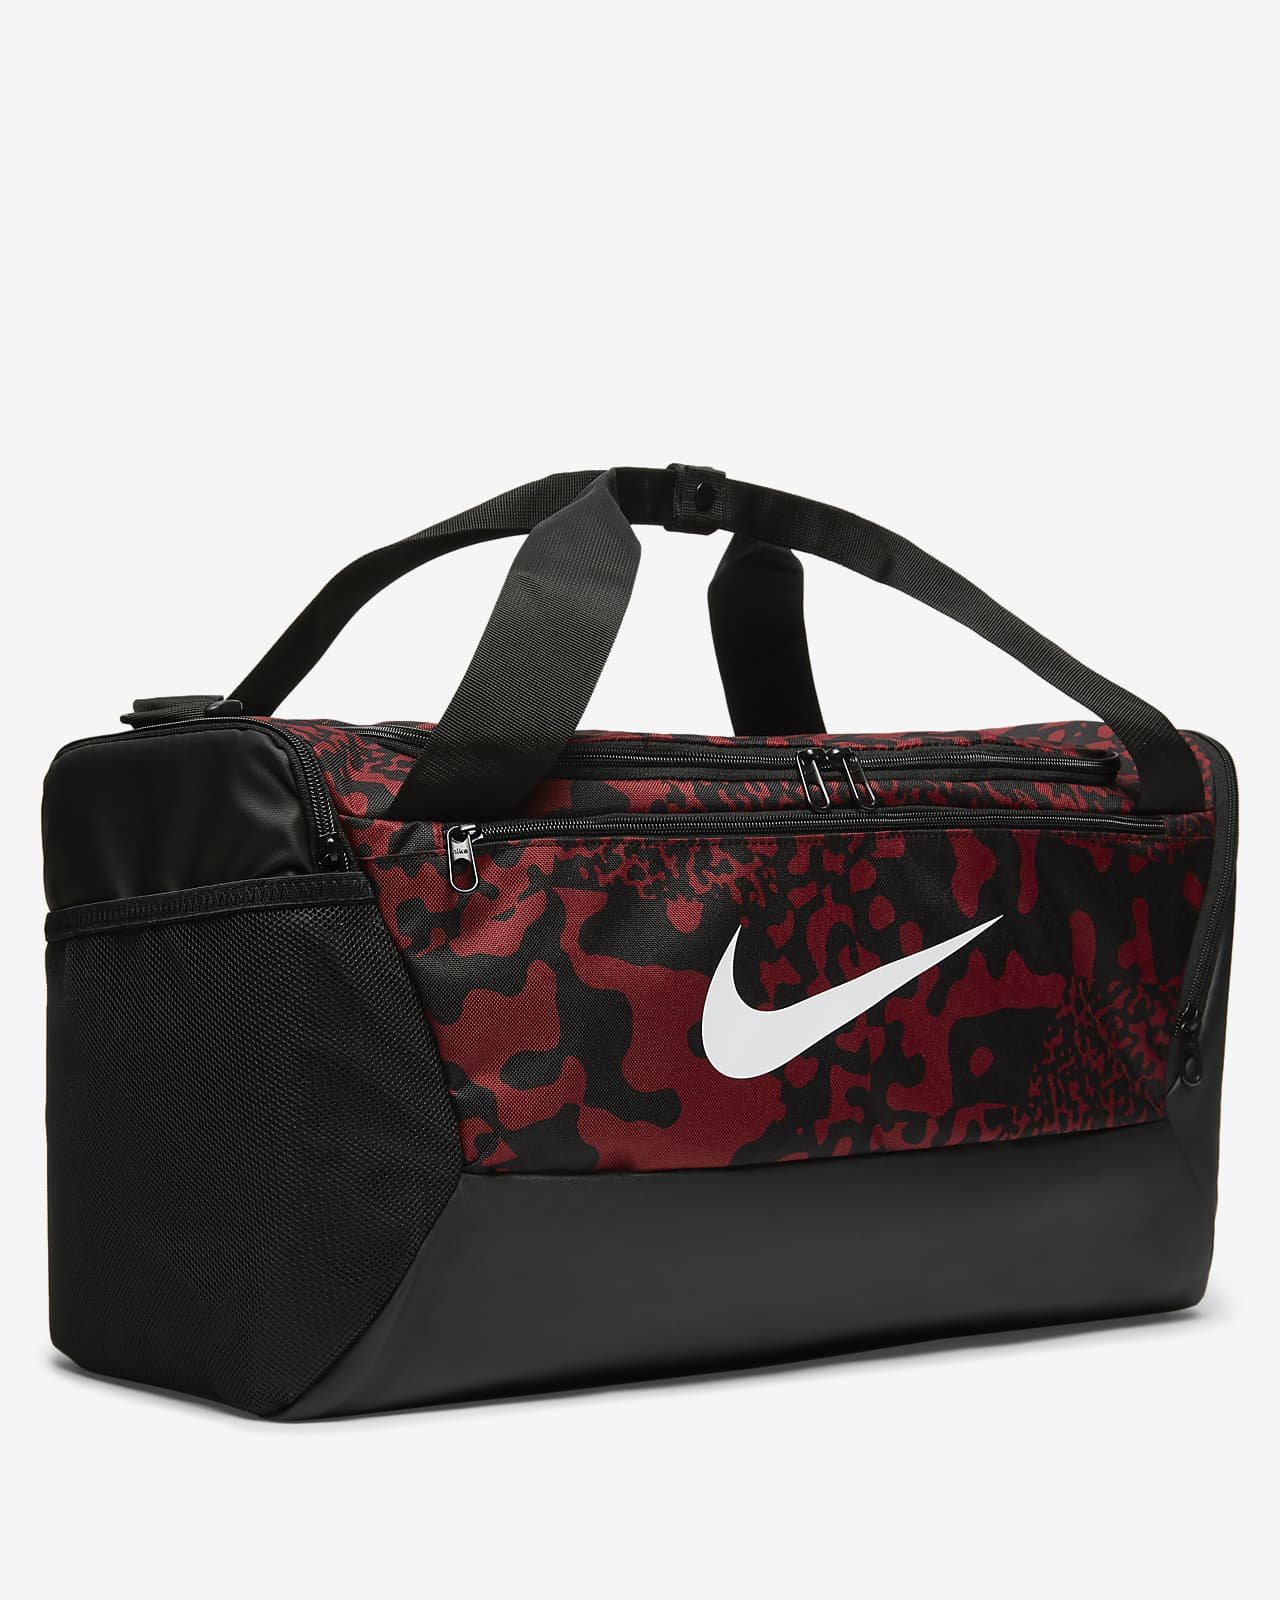 pedir Copiar Ubicación  Nike Brasilia Printed Training Duffel Bag (Small). Nike ID